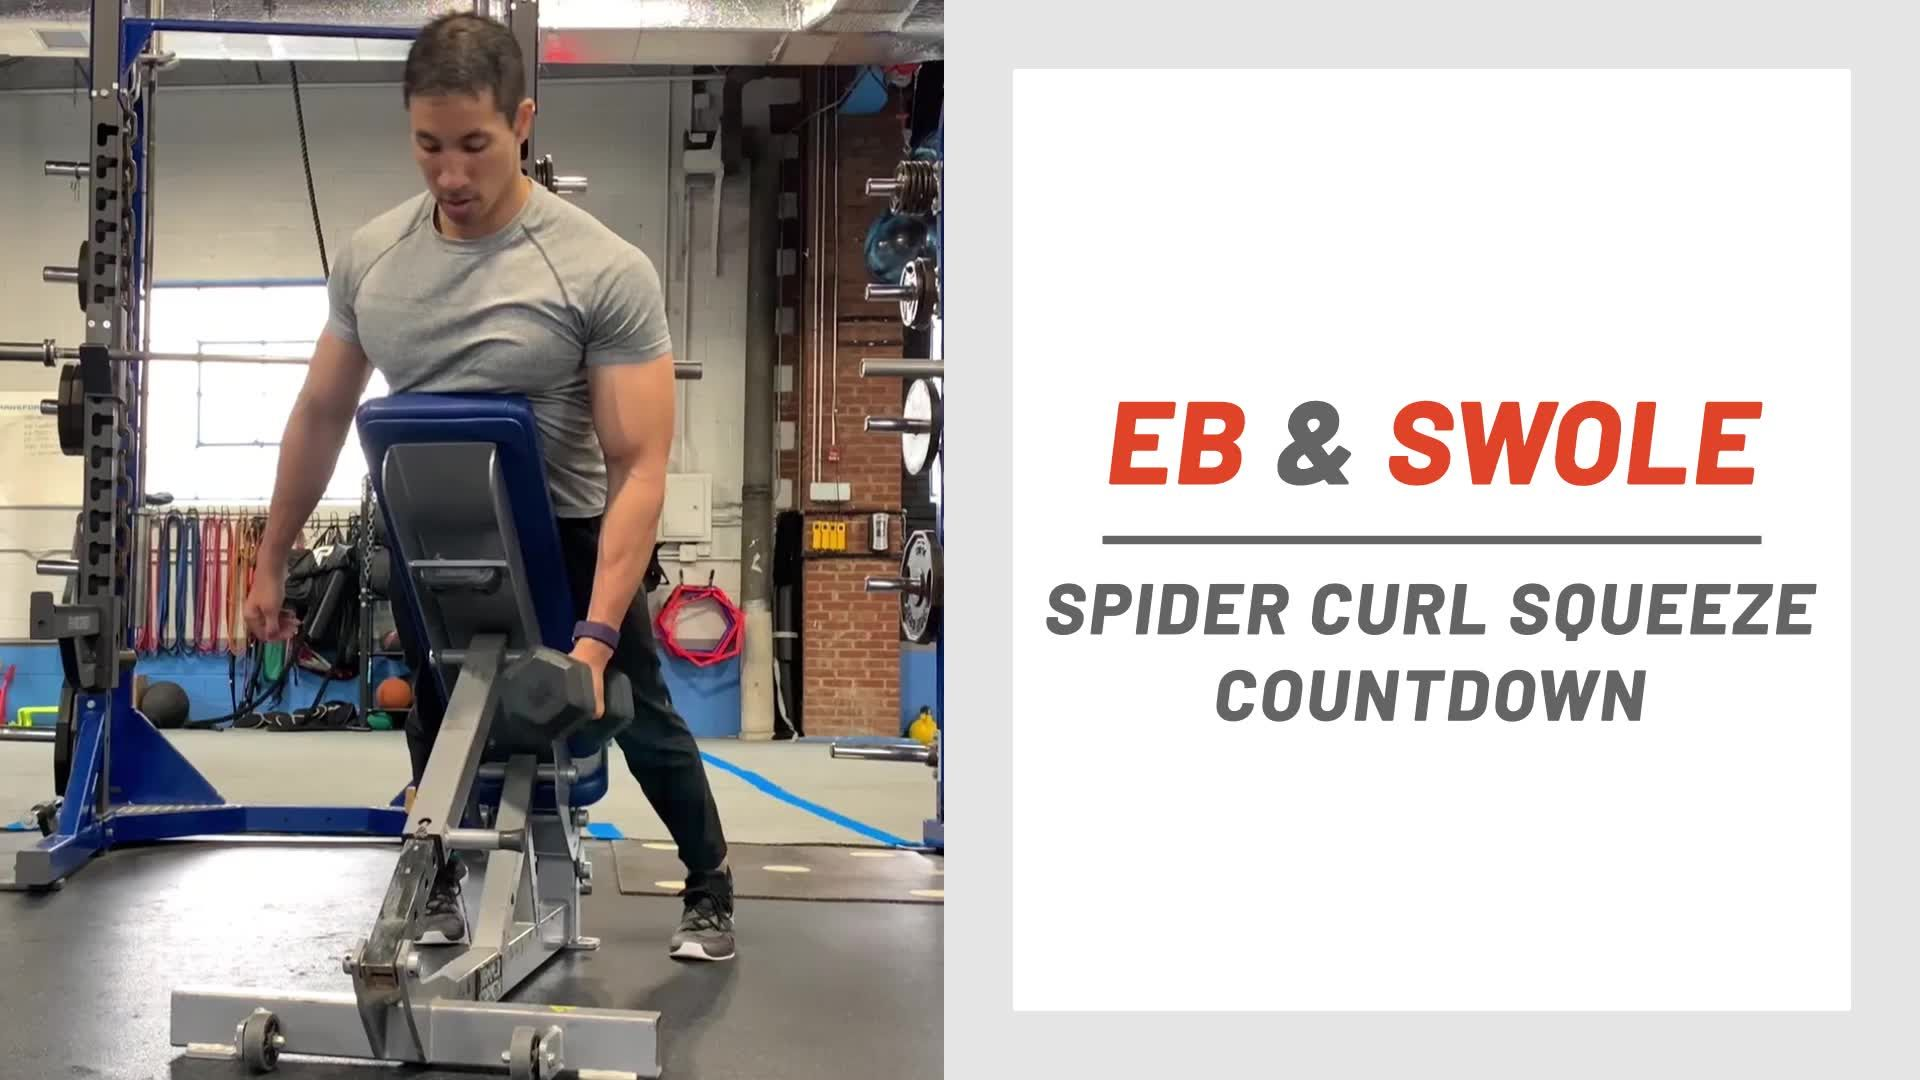 Use This Countdown Series to Build Your Biceps